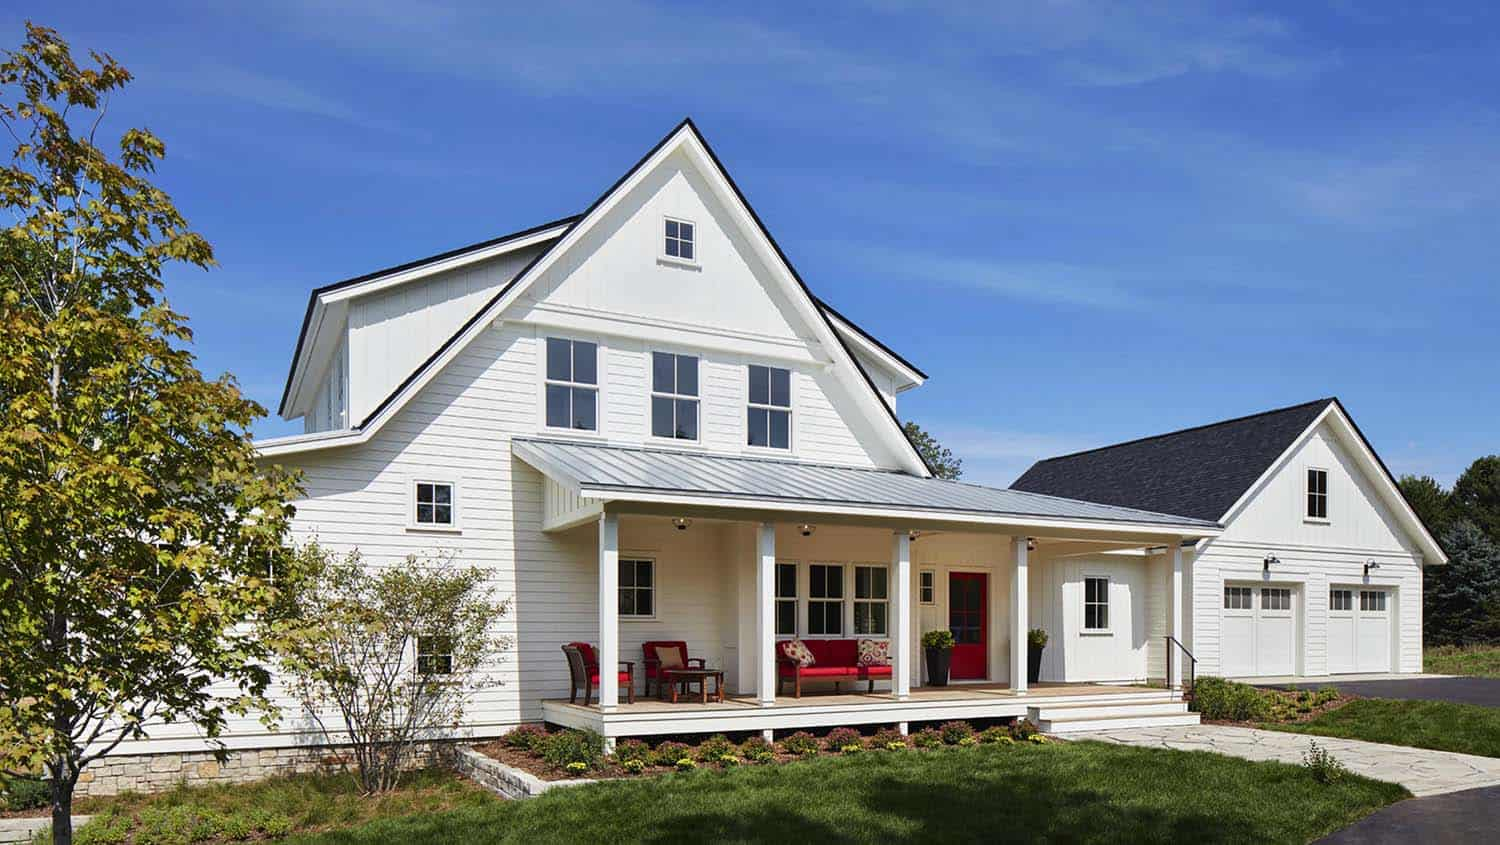 Breathtaking modern farmhouse nestled on a prairie setting in minnesota Model home furniture auction mn